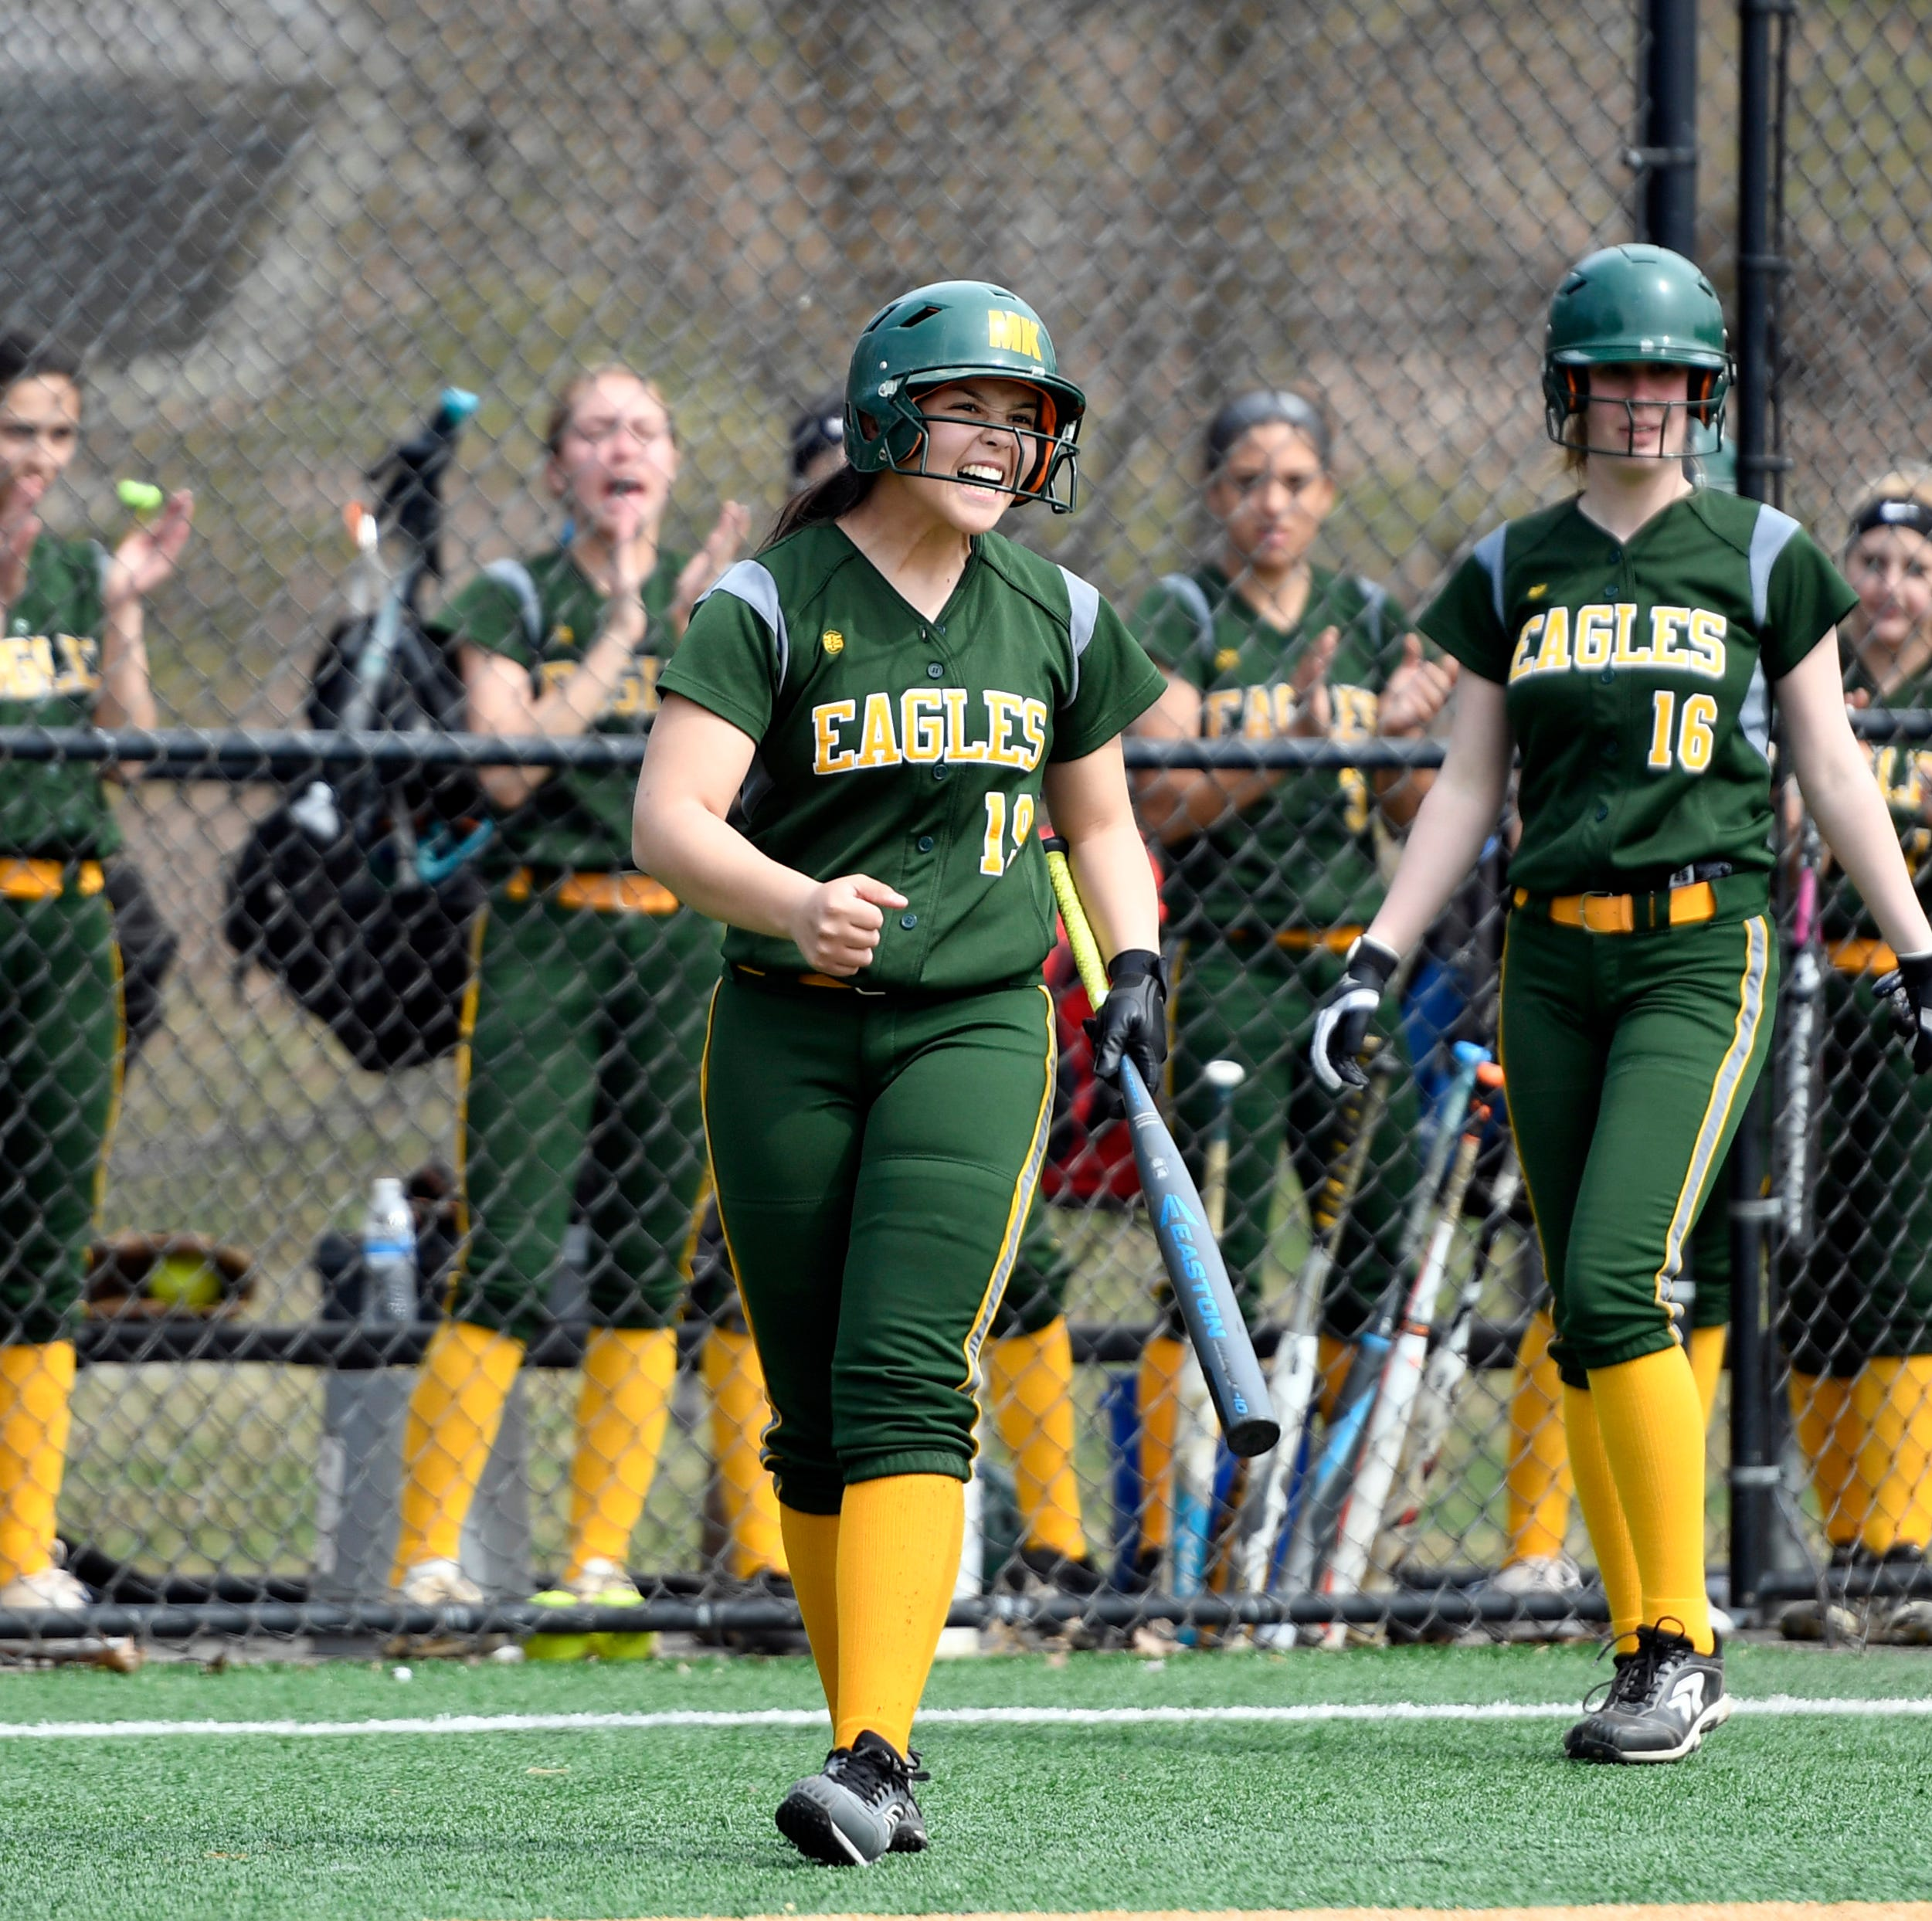 Morris Knolls softball voted top seed in Morris County Tournament